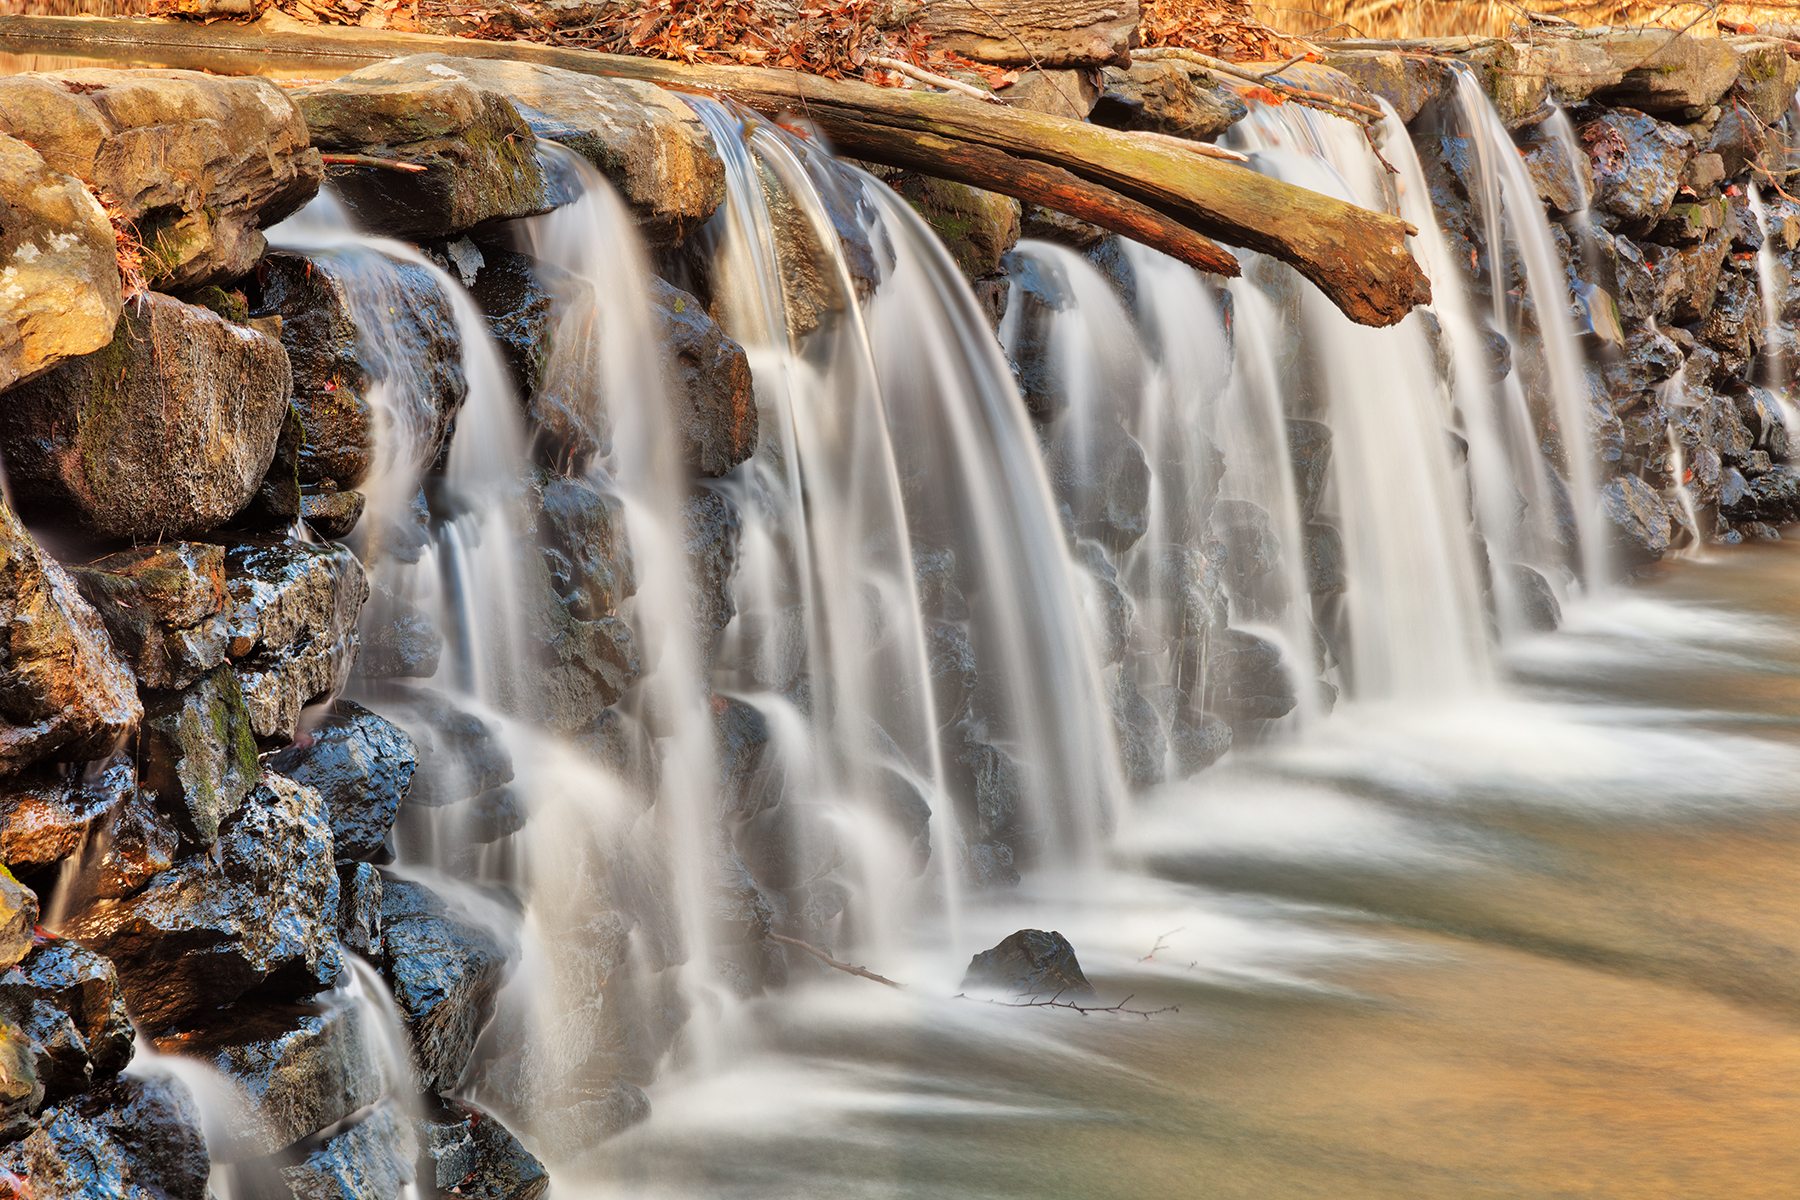 Ridley creek dam waterfall - hdr photo